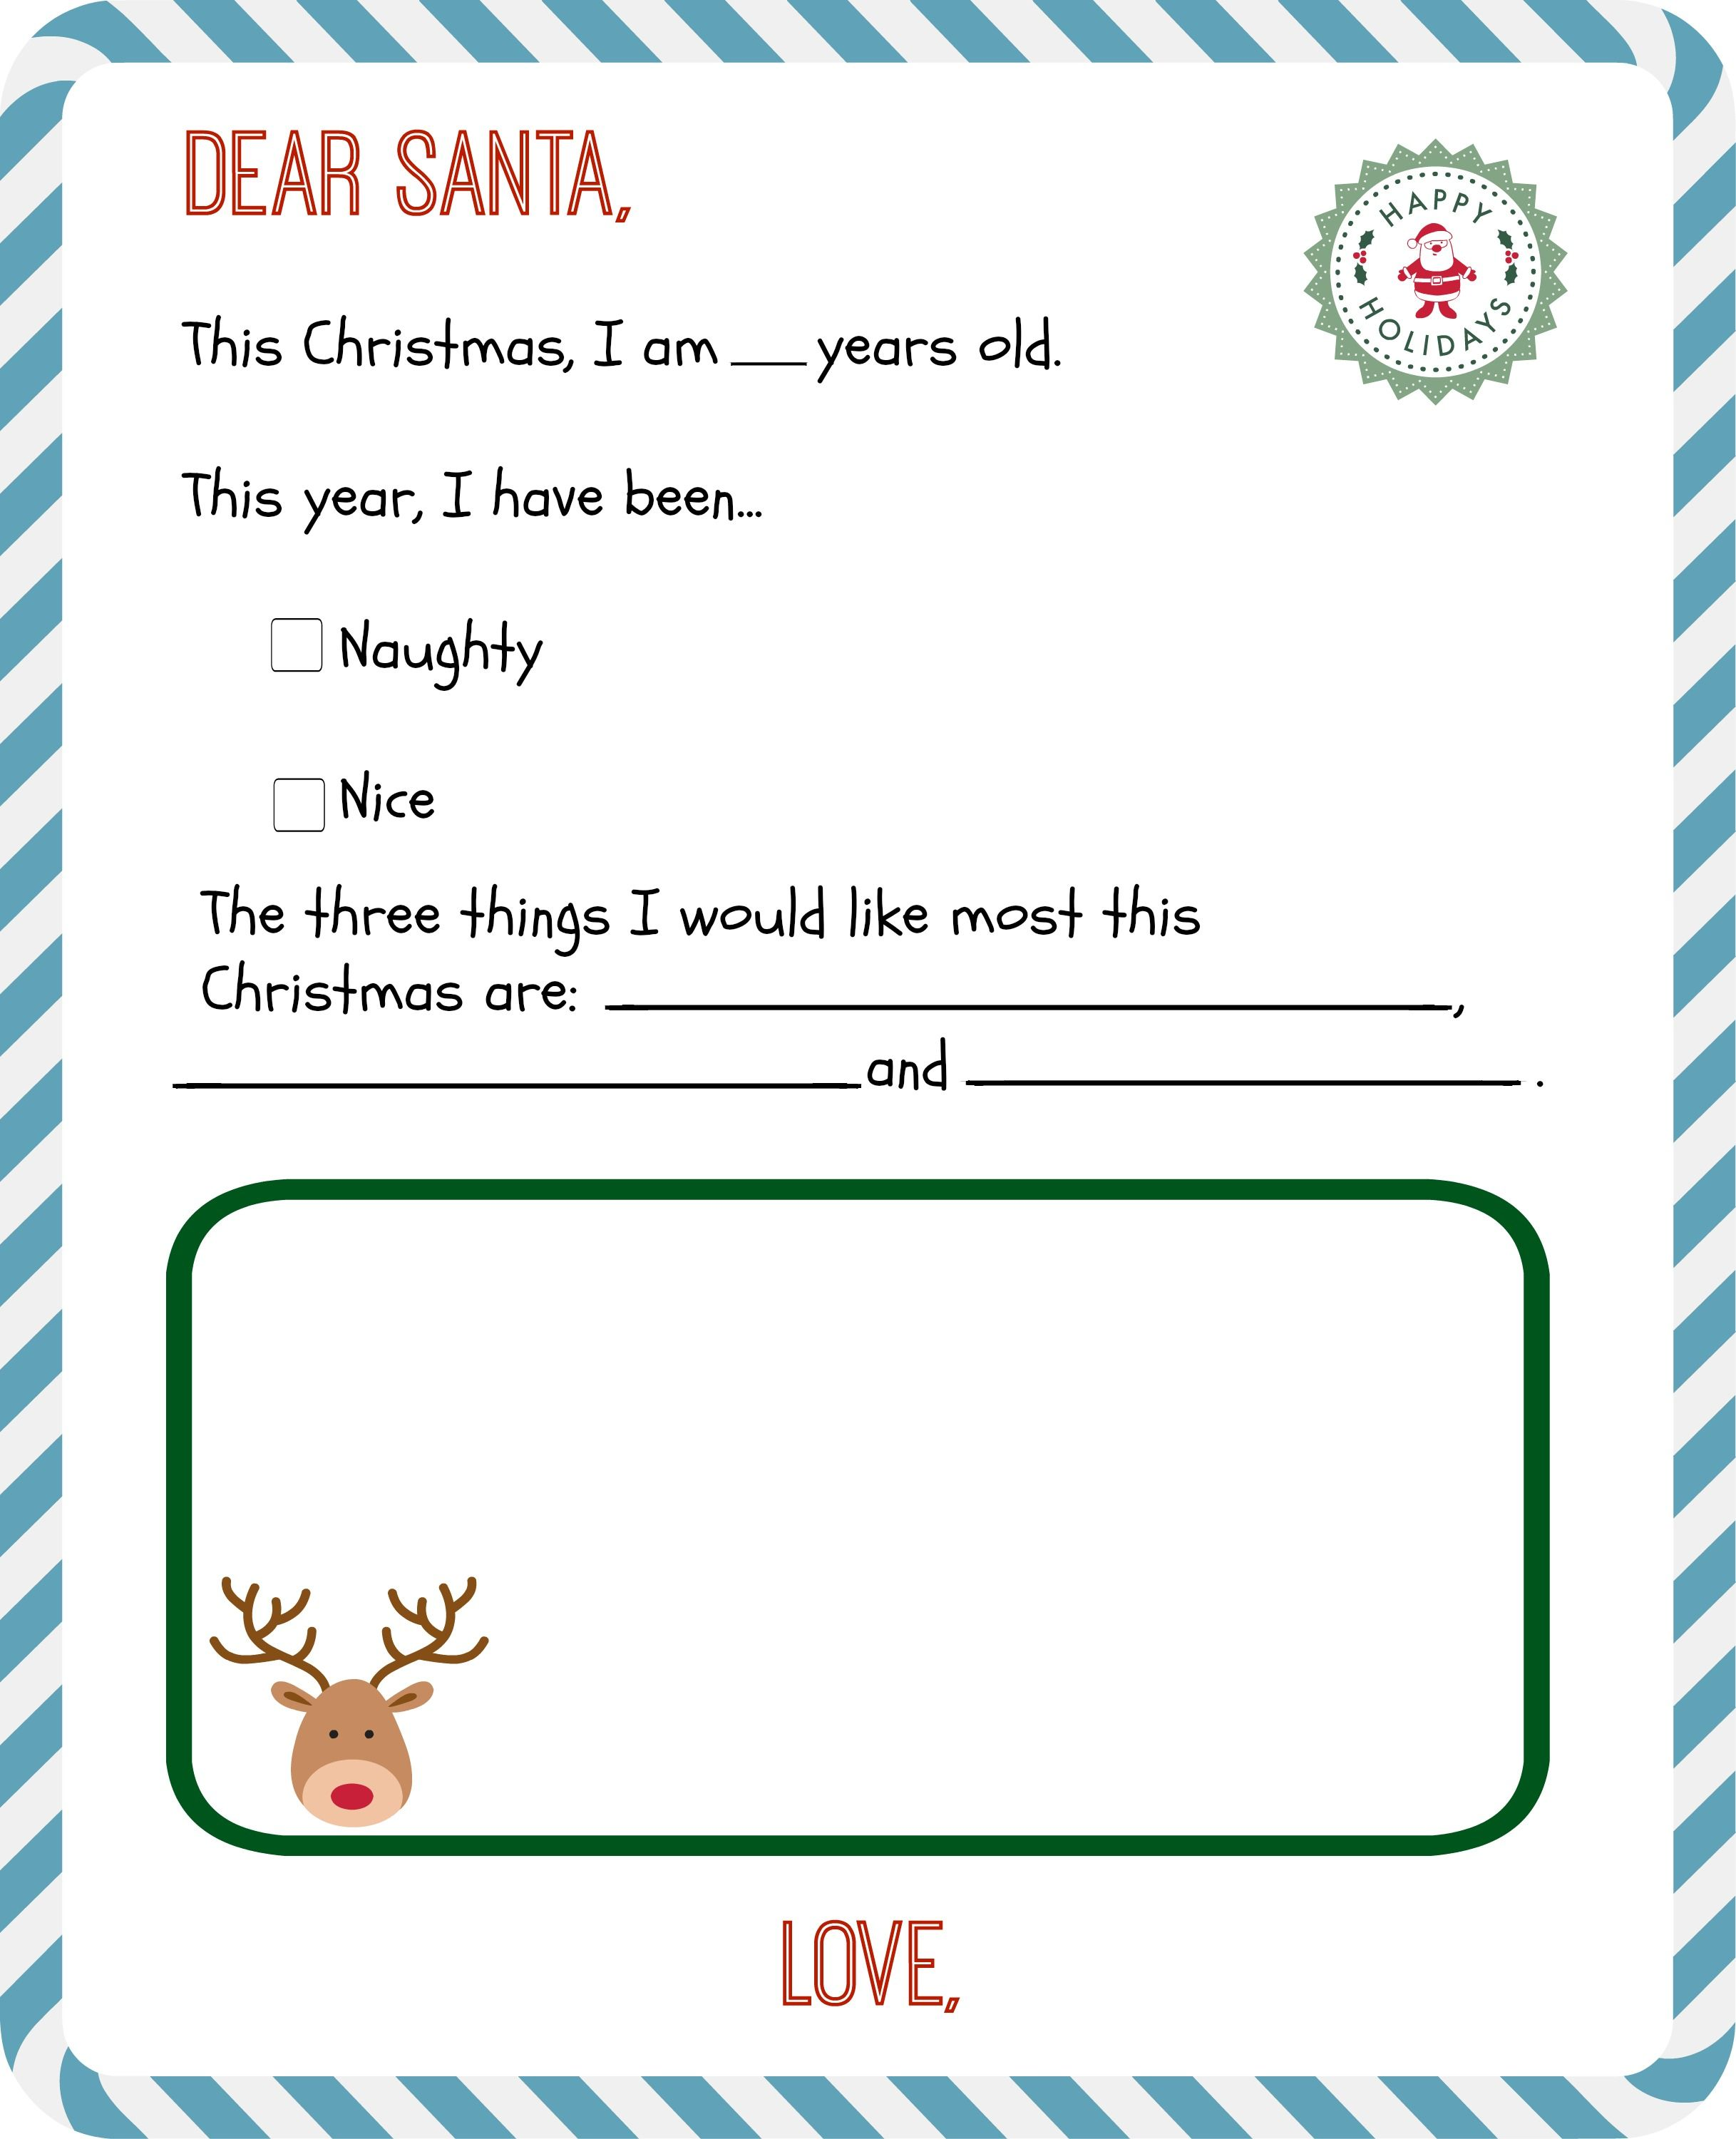 Free Printable Letter to Santa Templates + Get a Reply